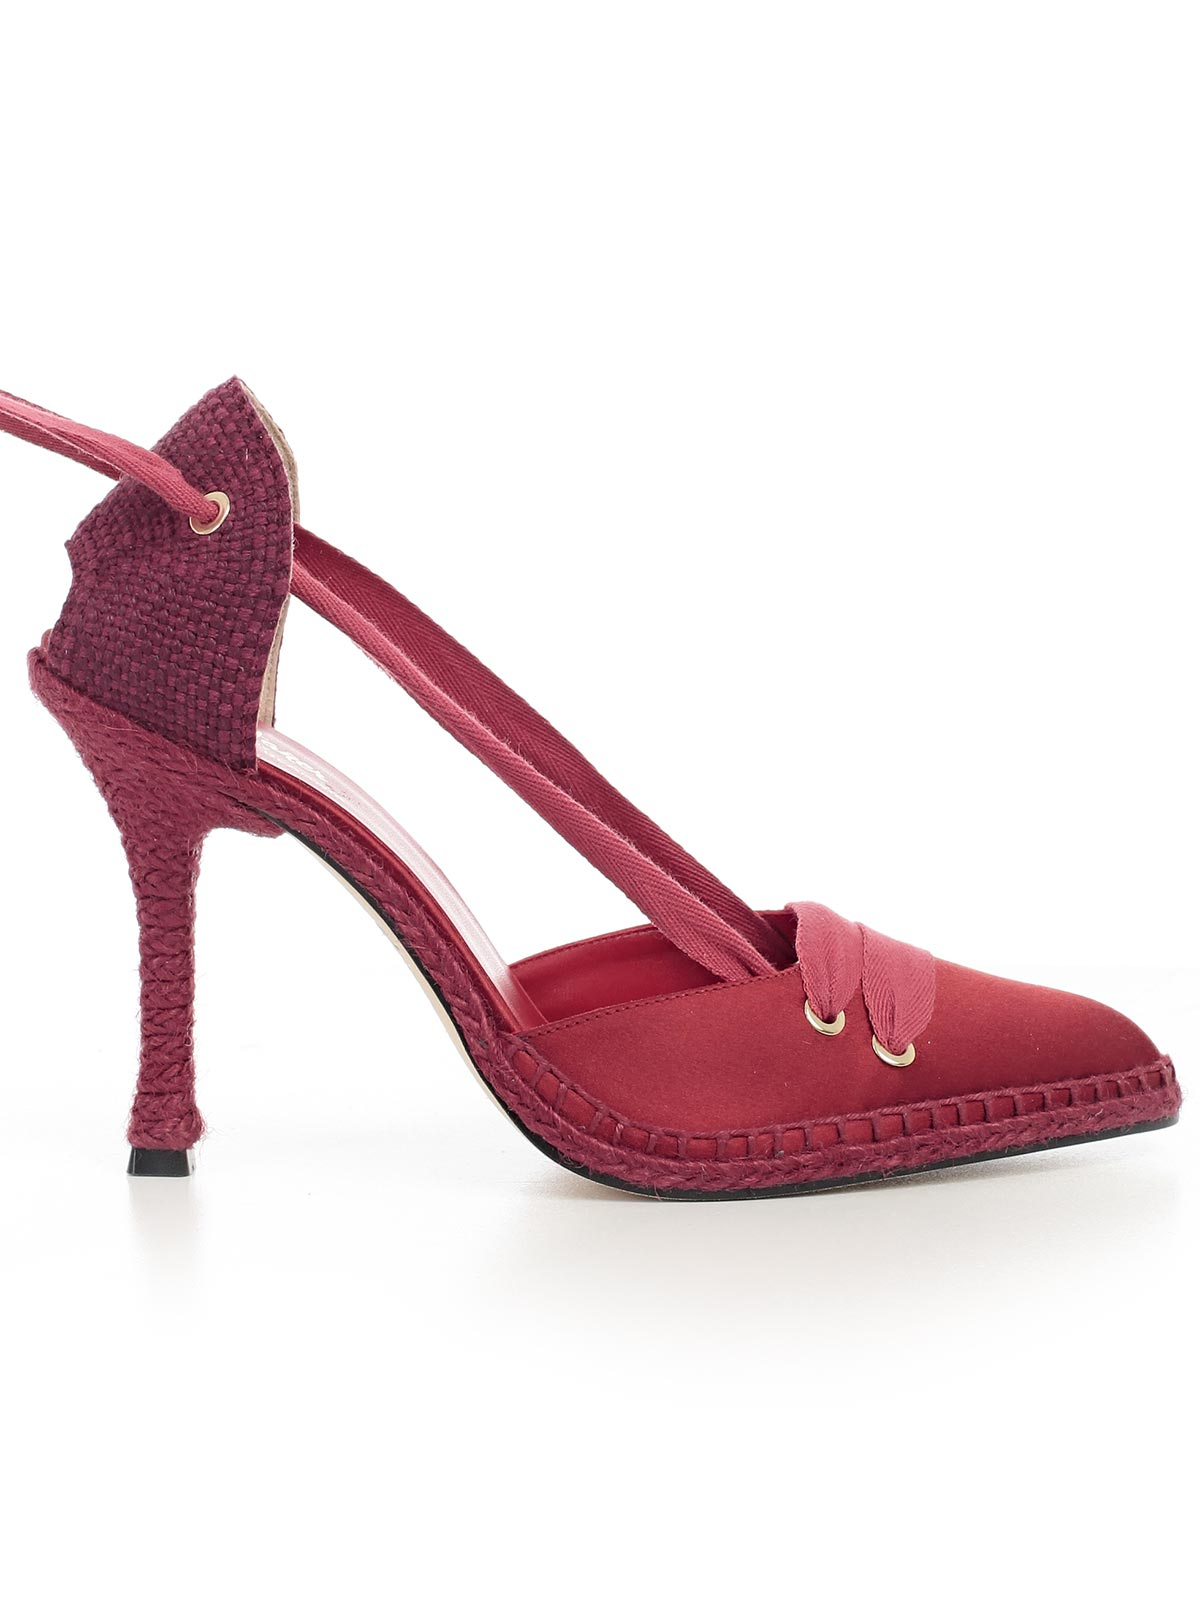 Castaner by manolo blahnik footwear bernardelli store for Scarpe manolo blahnik shop on line